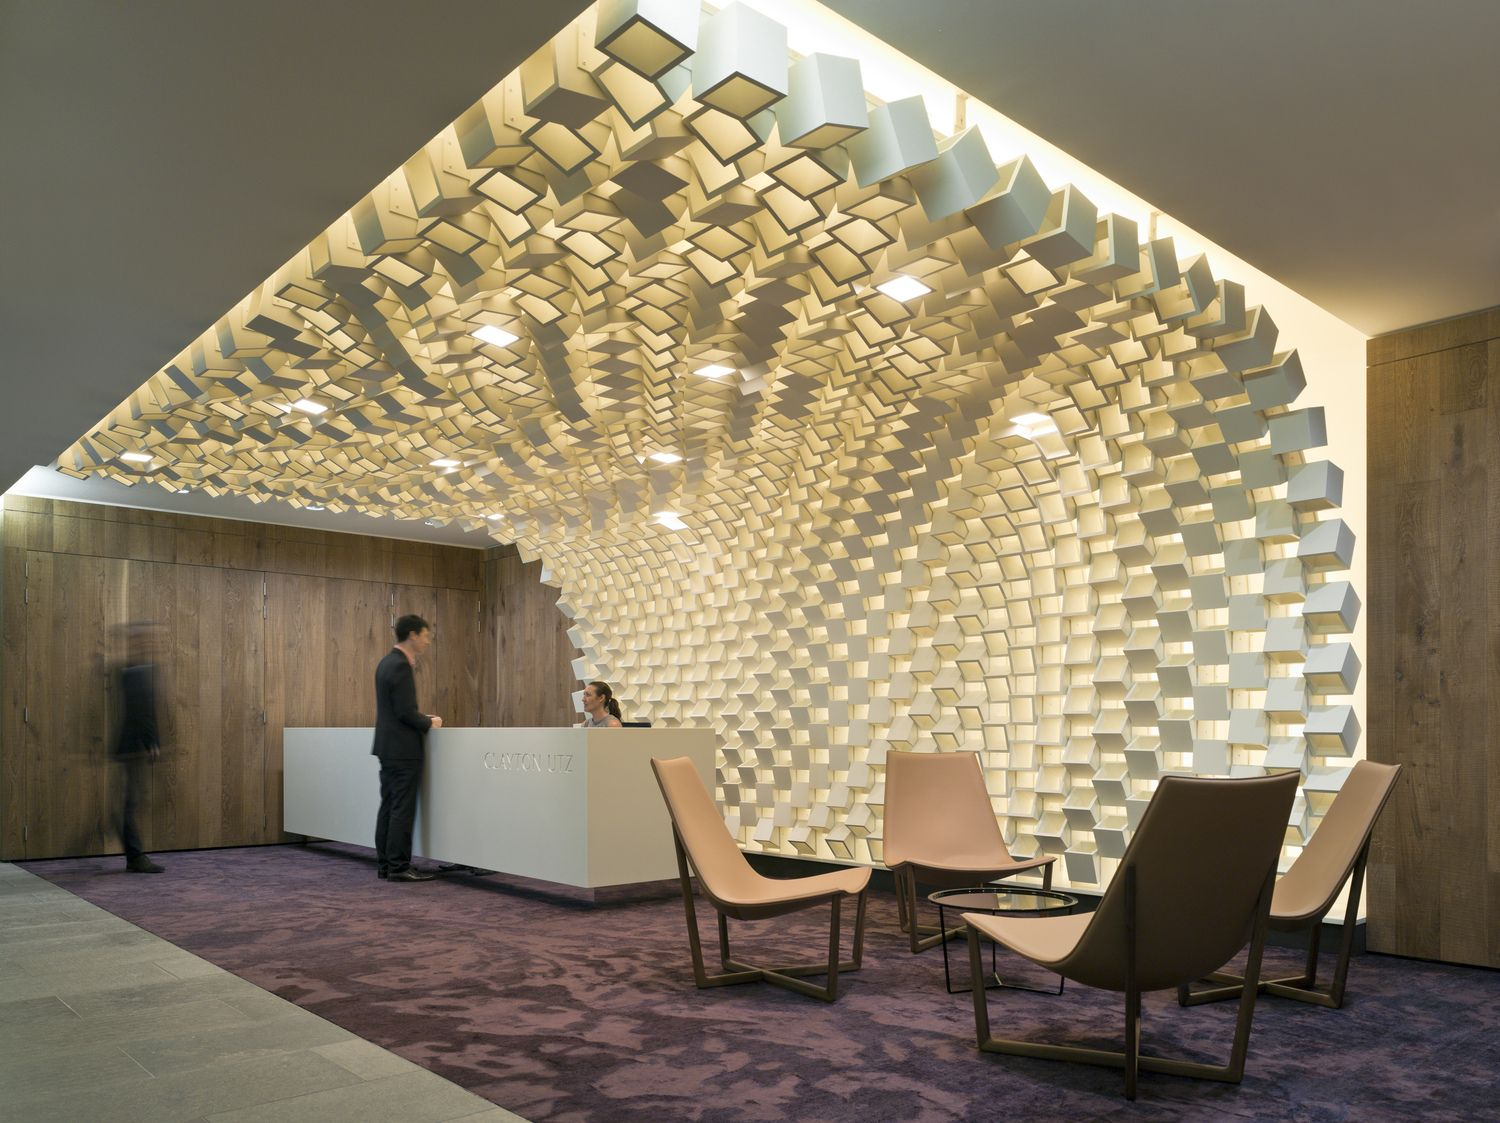 Unique Ceiling Design For The Reception Desk At Clayton Utz